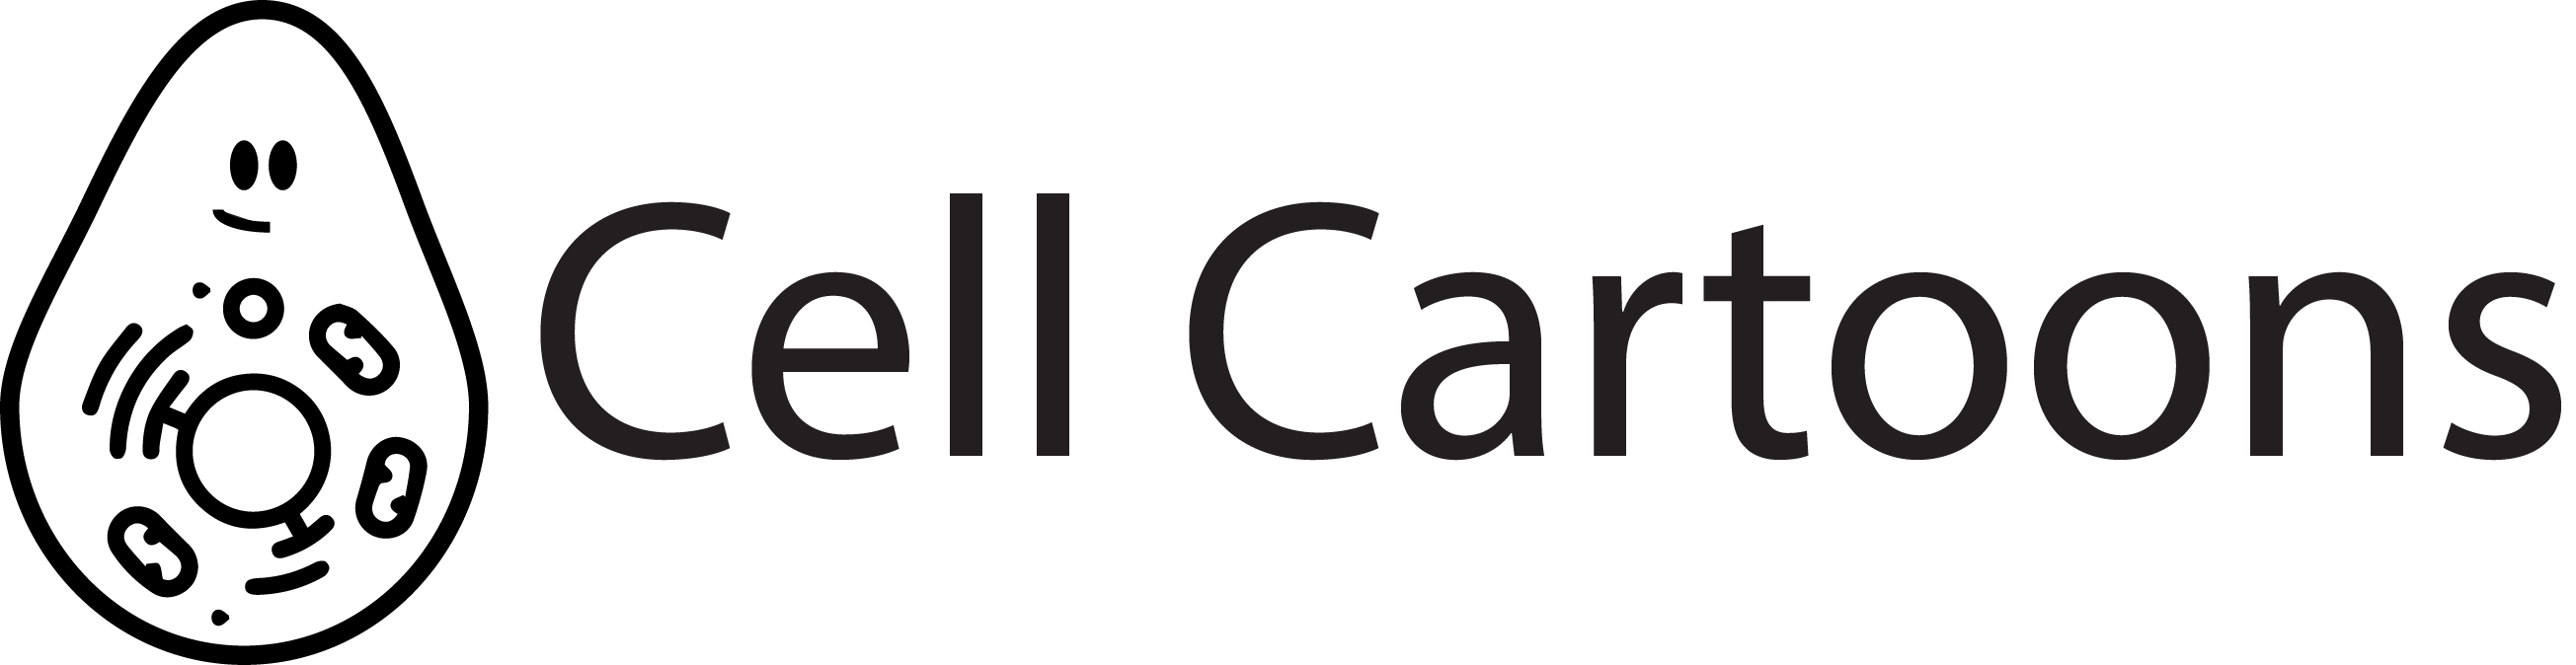 Cell-Cartoons-Logo-with-text-1.png